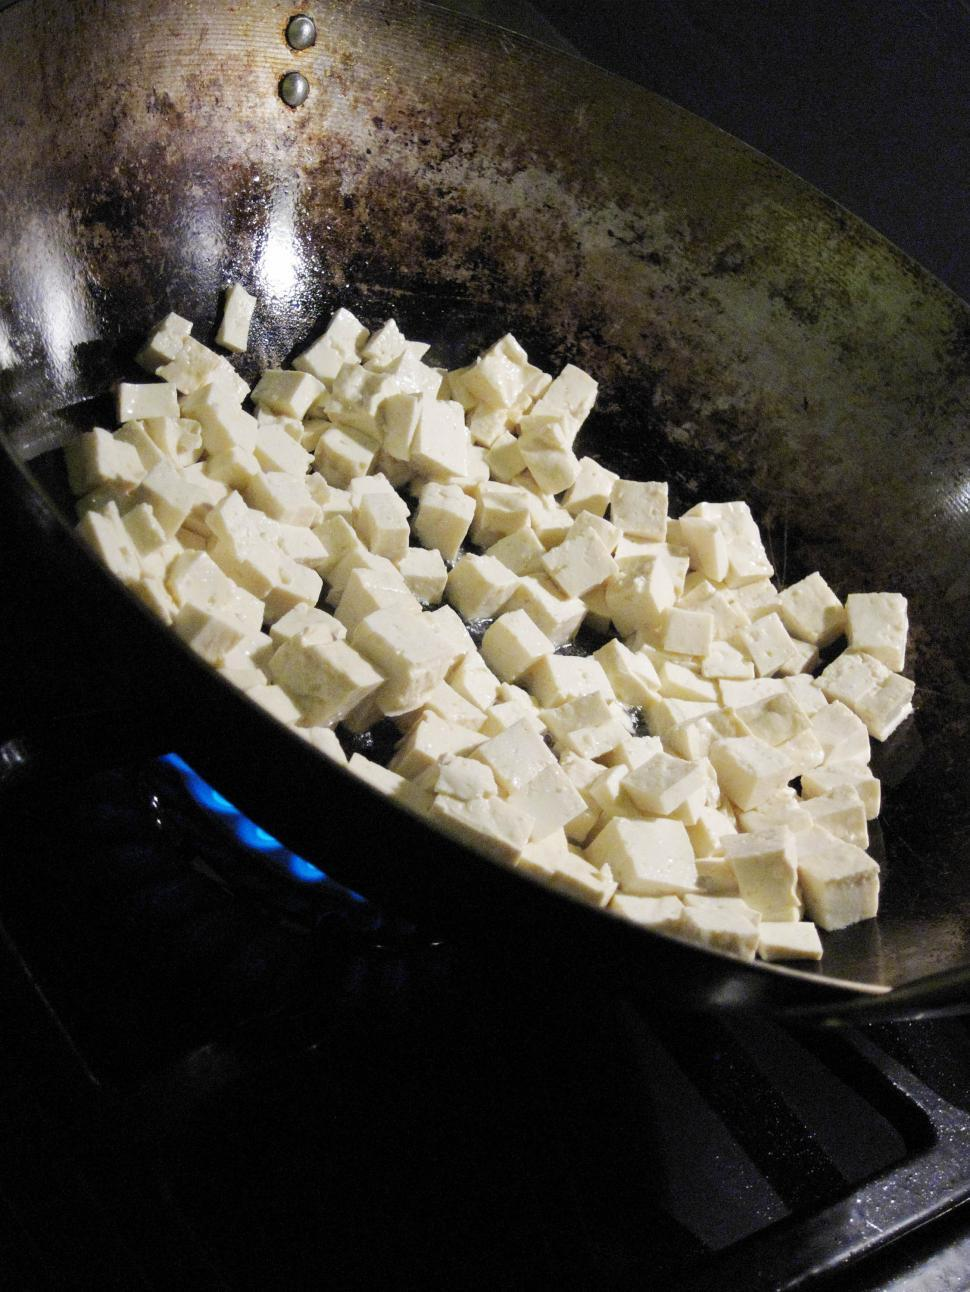 Download Free Stock HD Photo of Tofu in Wok Online